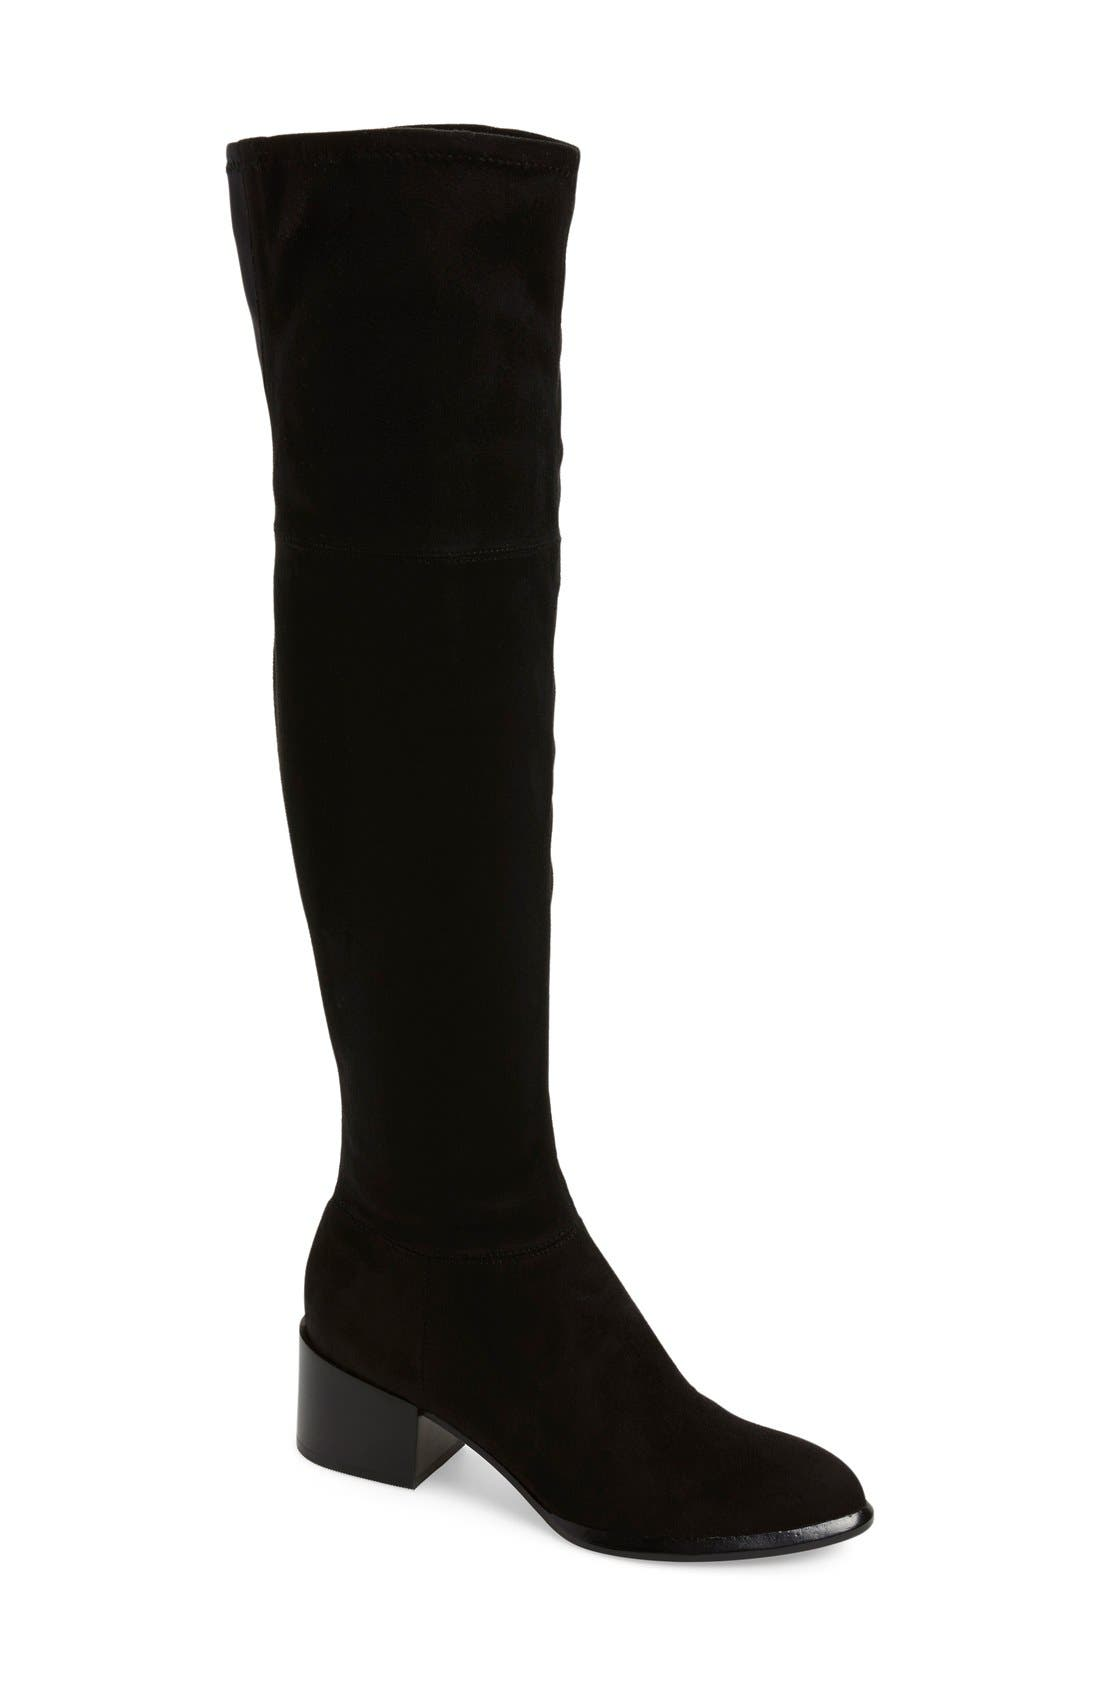 Alternate Image 1 Selected - Calvin Klein 'Nani' Over The Knee Boot (Women) (Special Purchase)